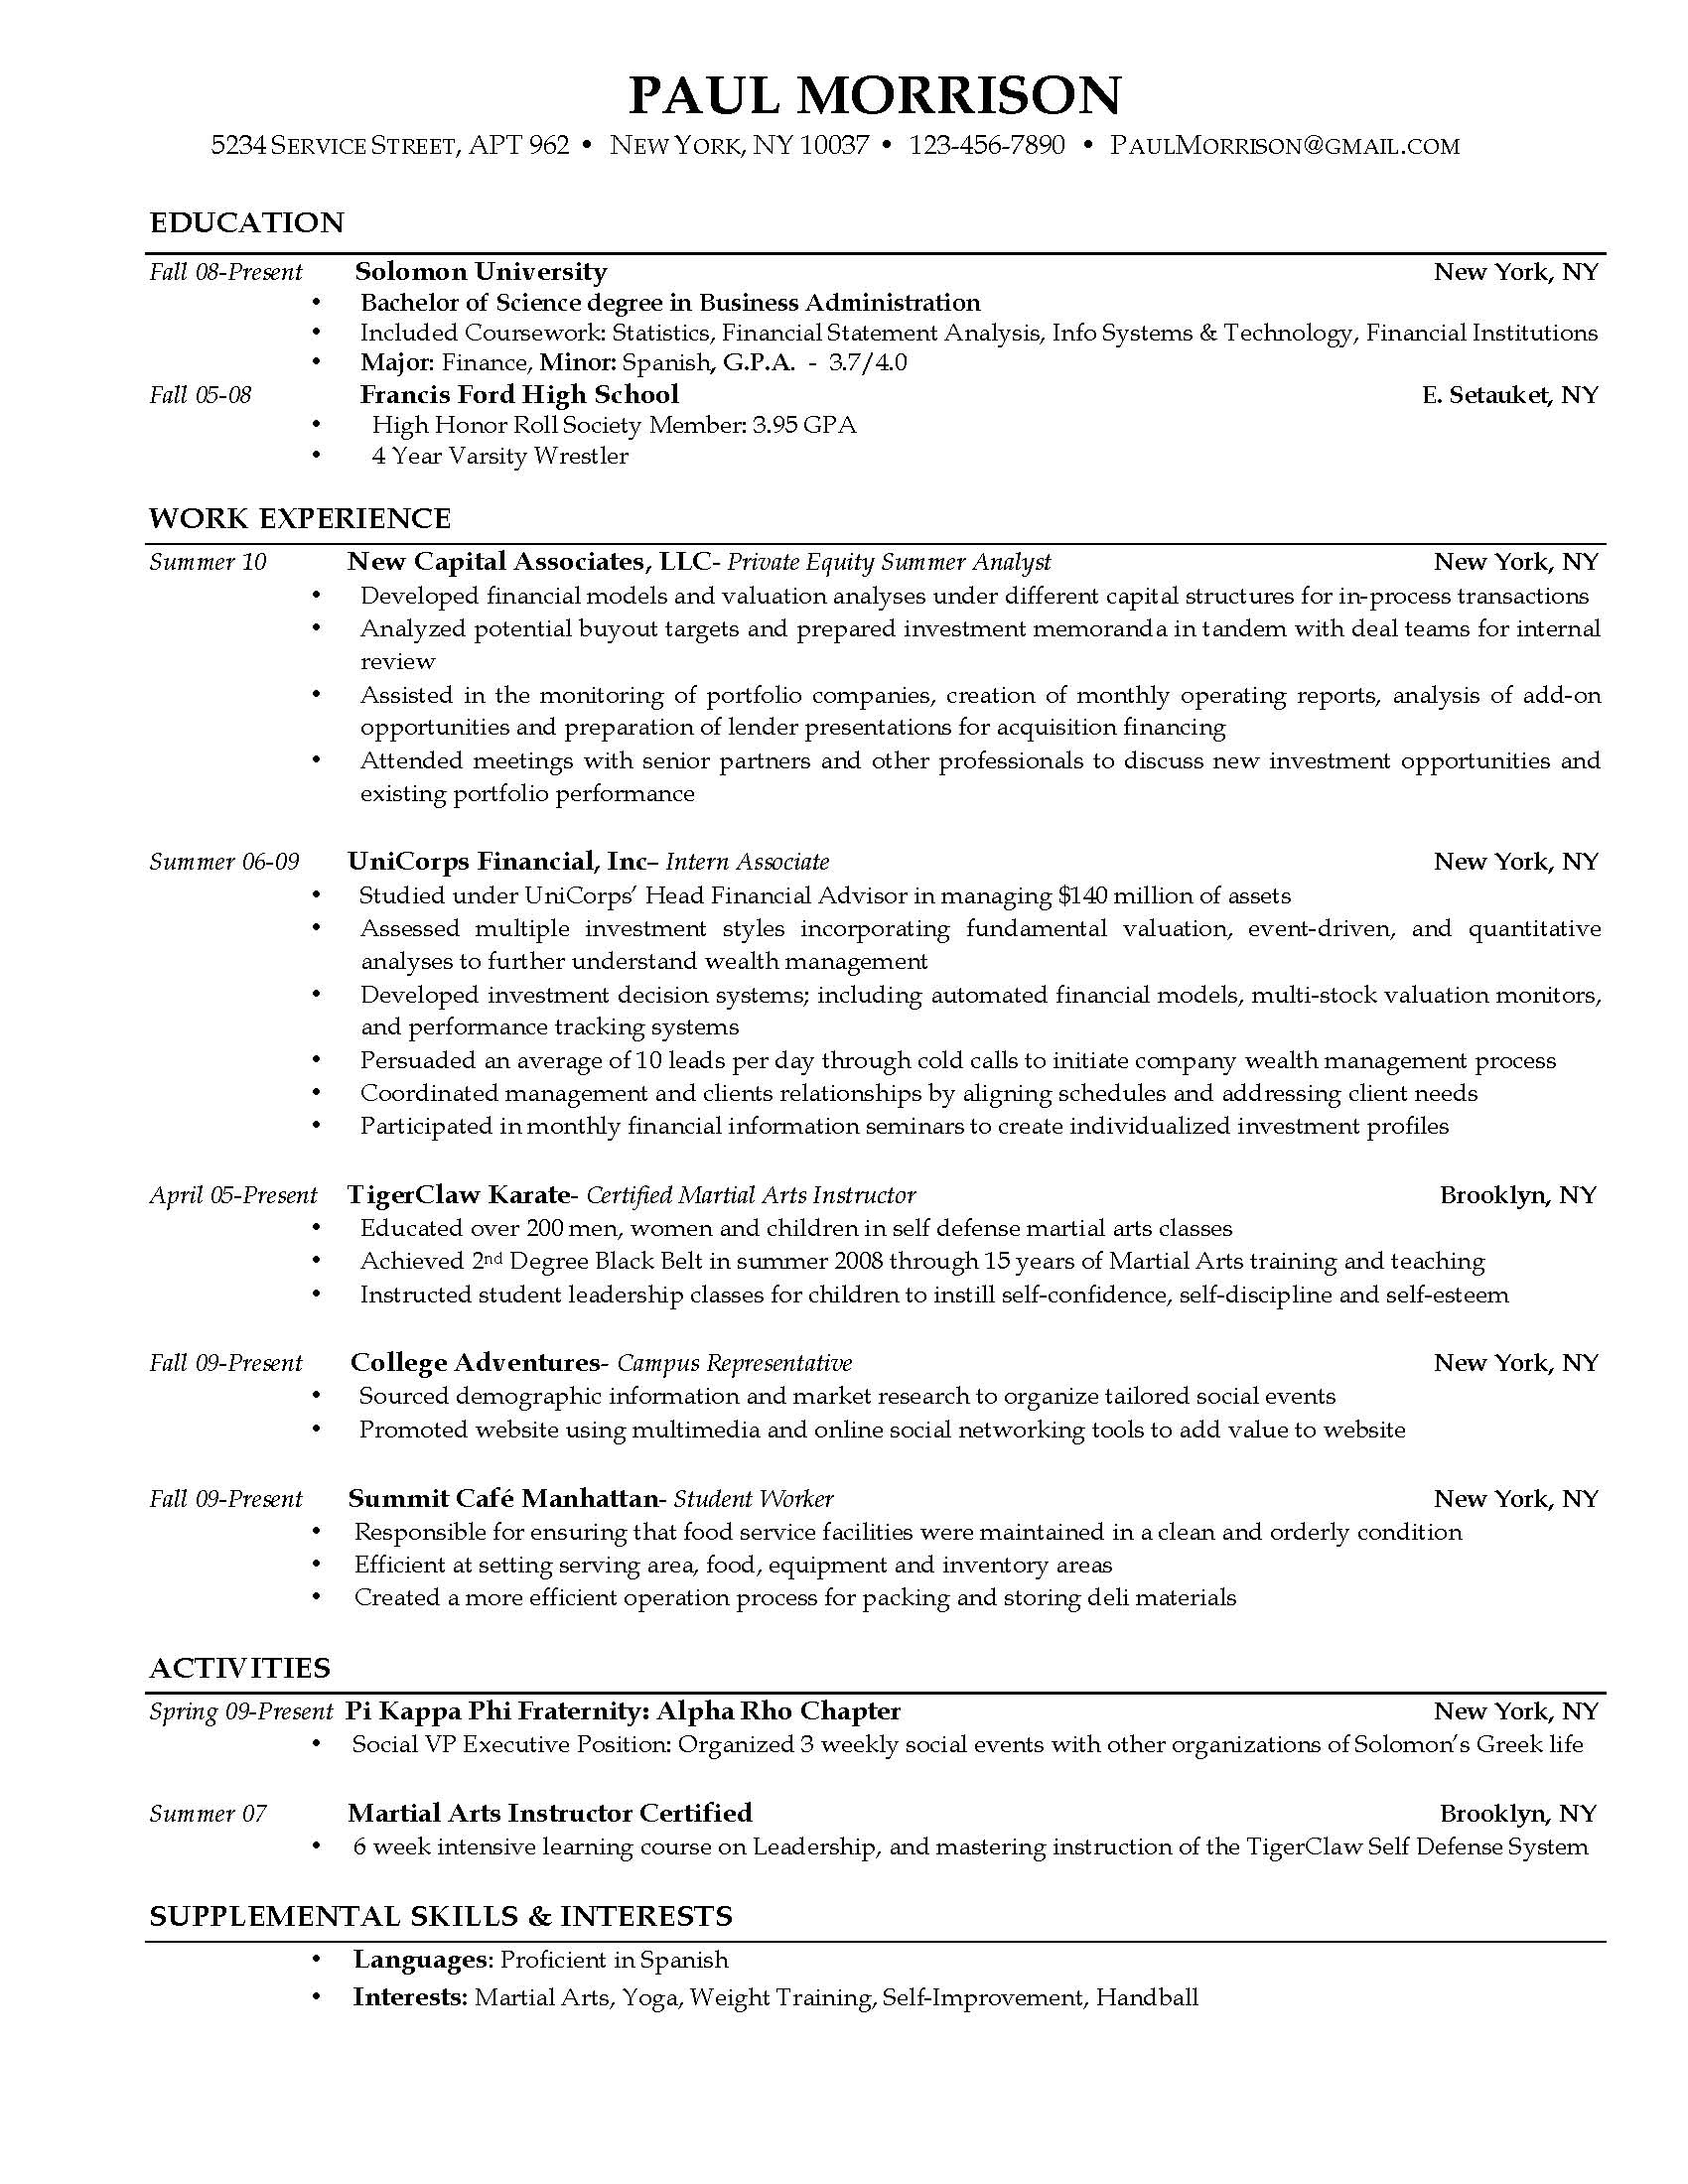 resume education current student resume templates resume education current student education world writing a good resume student exercise here is an example